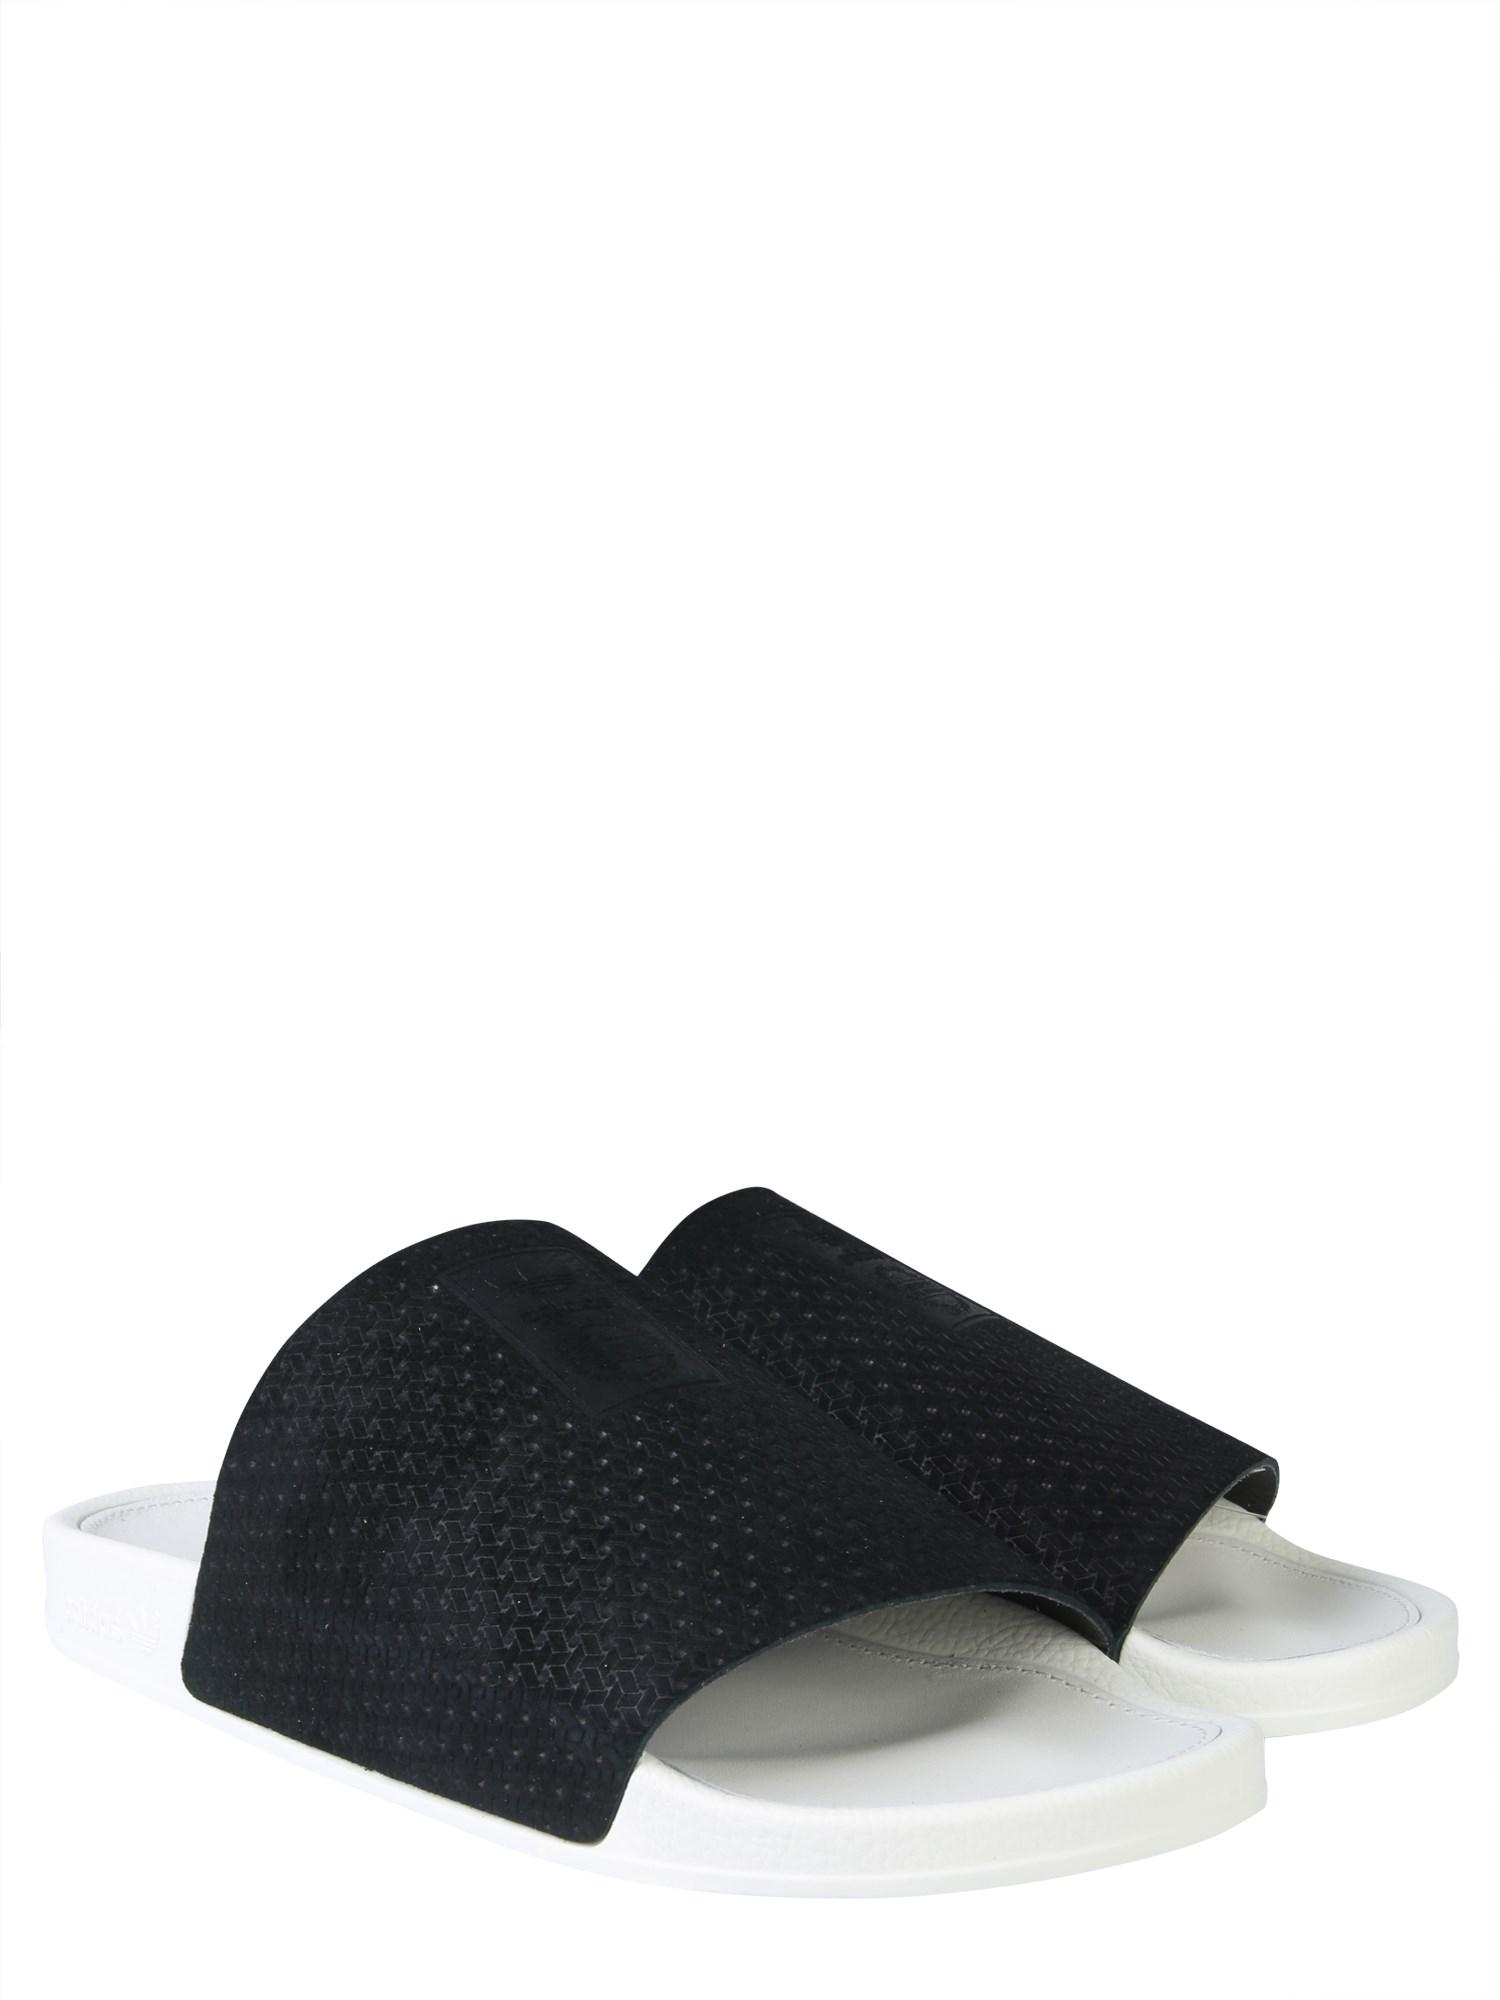 e2e1bbb9d Lyst - adidas Originals Slide Adilette Luxe W Leather Slip-ons in Black